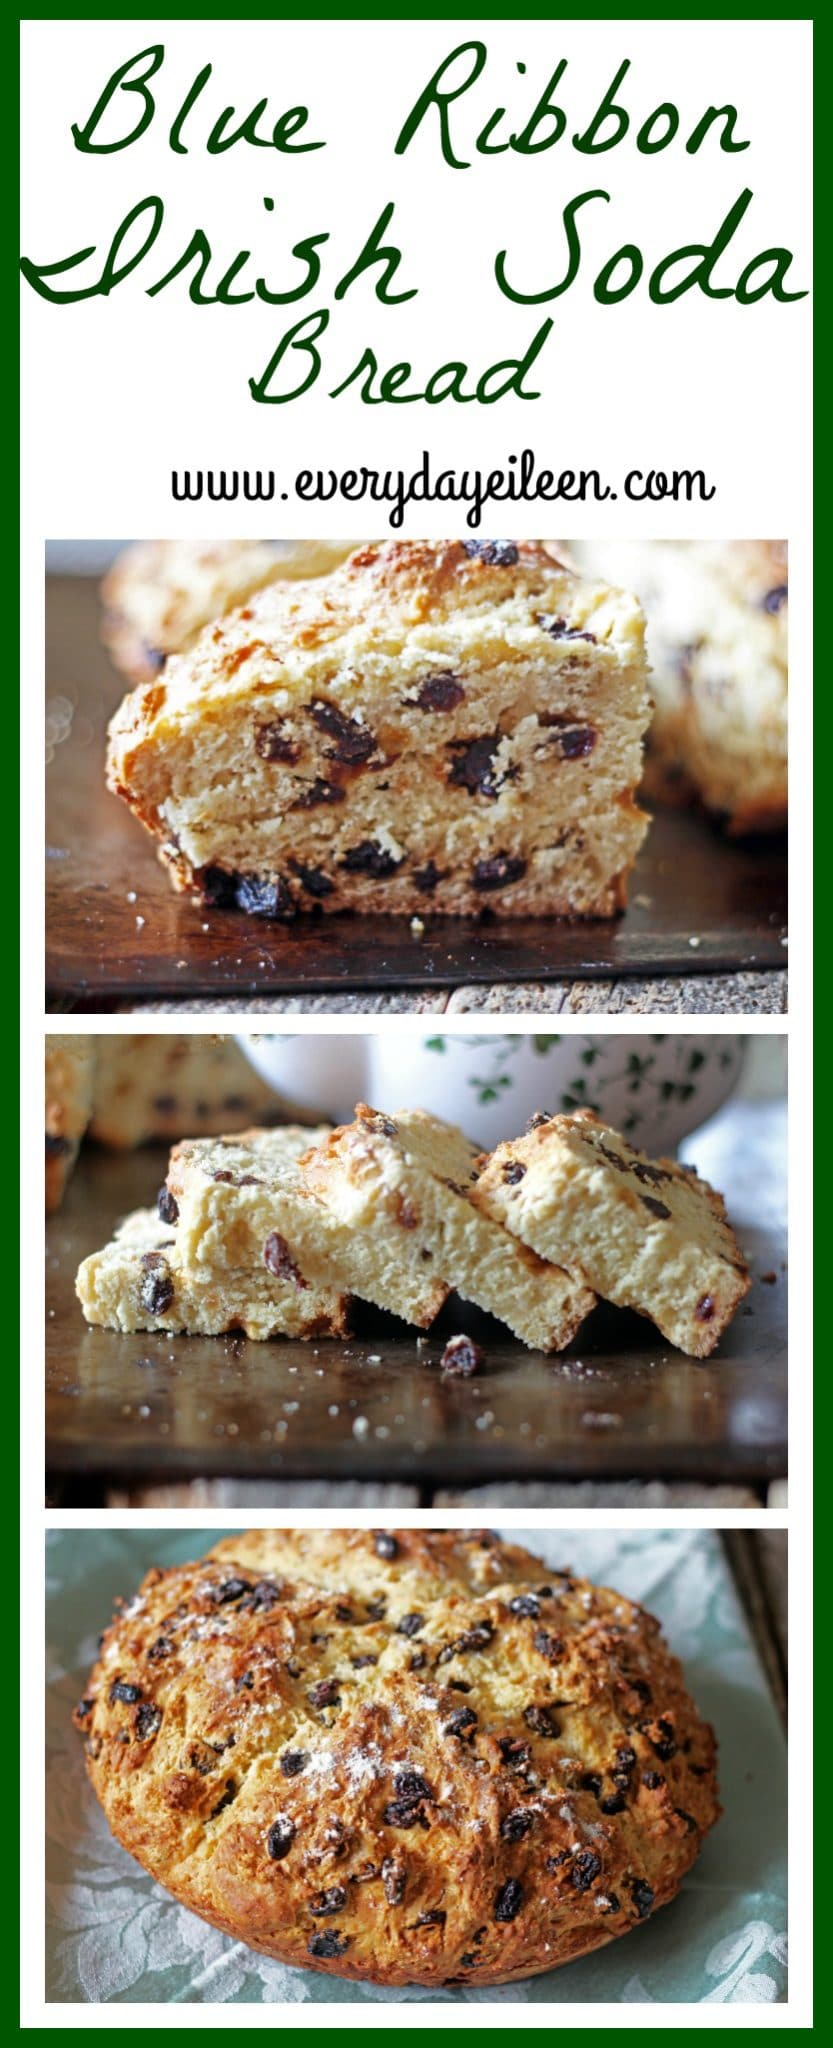 Here you have The Best Irish Soda Bread Recipe! My families recipe is a one-bowl wonderful easy bread. You will be a hit with your family once they taste this bread. #irishsodabread #sodabread #authentirishsodabread #irishsodabreadwithraisins #traditionalirishsodabread #everydayeileen